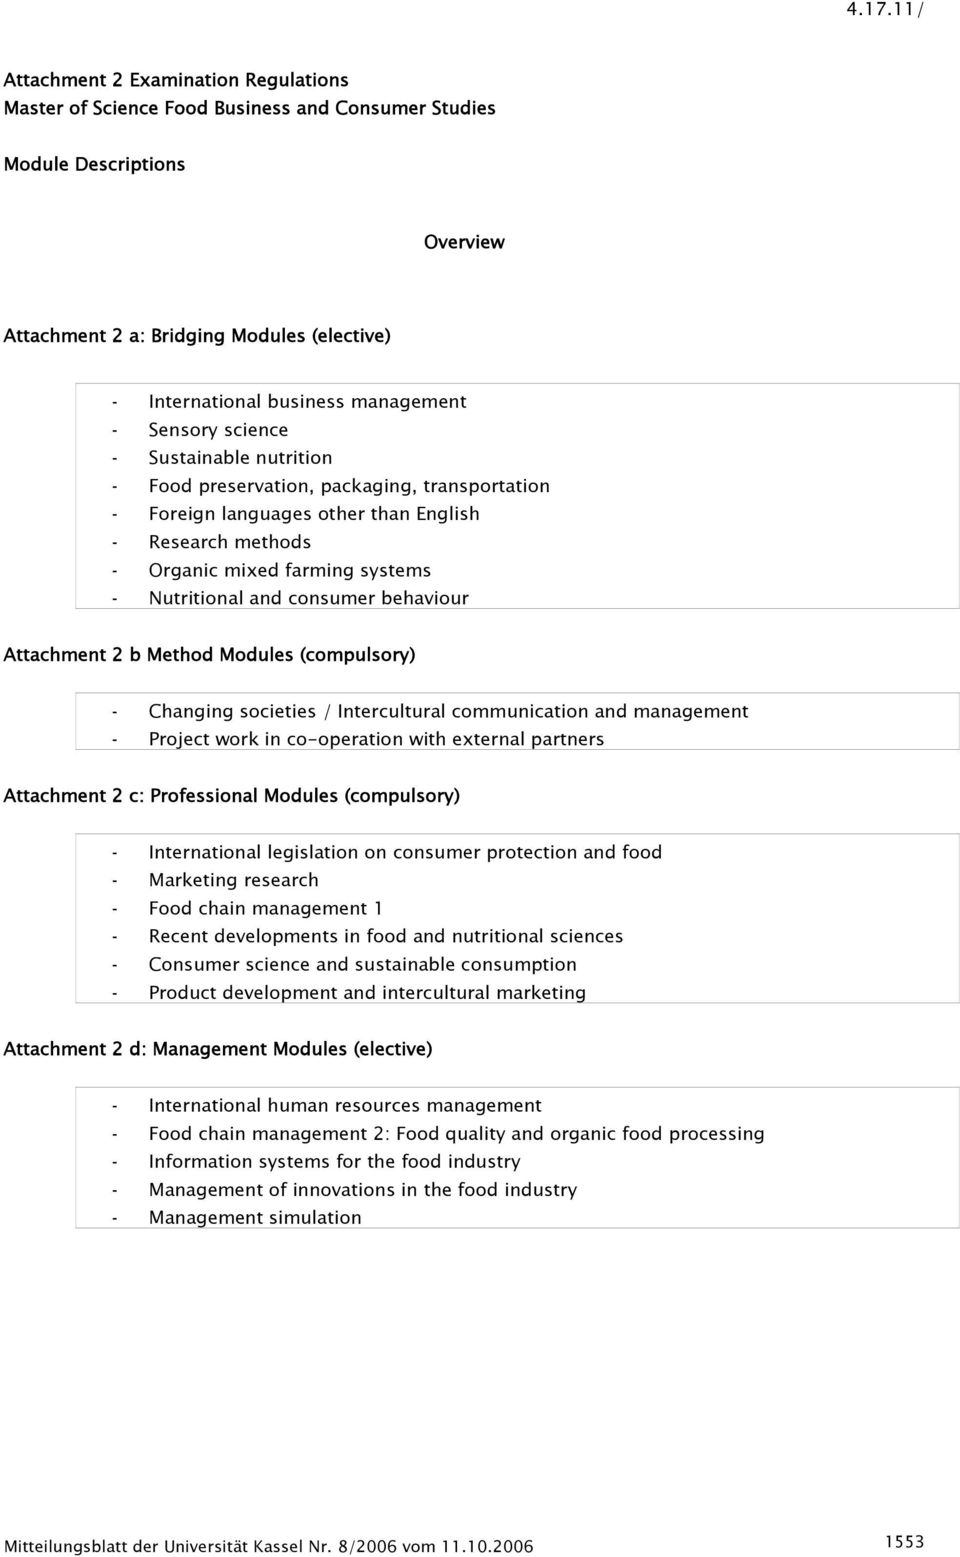 Nutritional and consumer behaviour Attachment 2 b Method Modules (compulsory) - Changing societies / Intercultural communication and management - Project work in co-operation with external partners